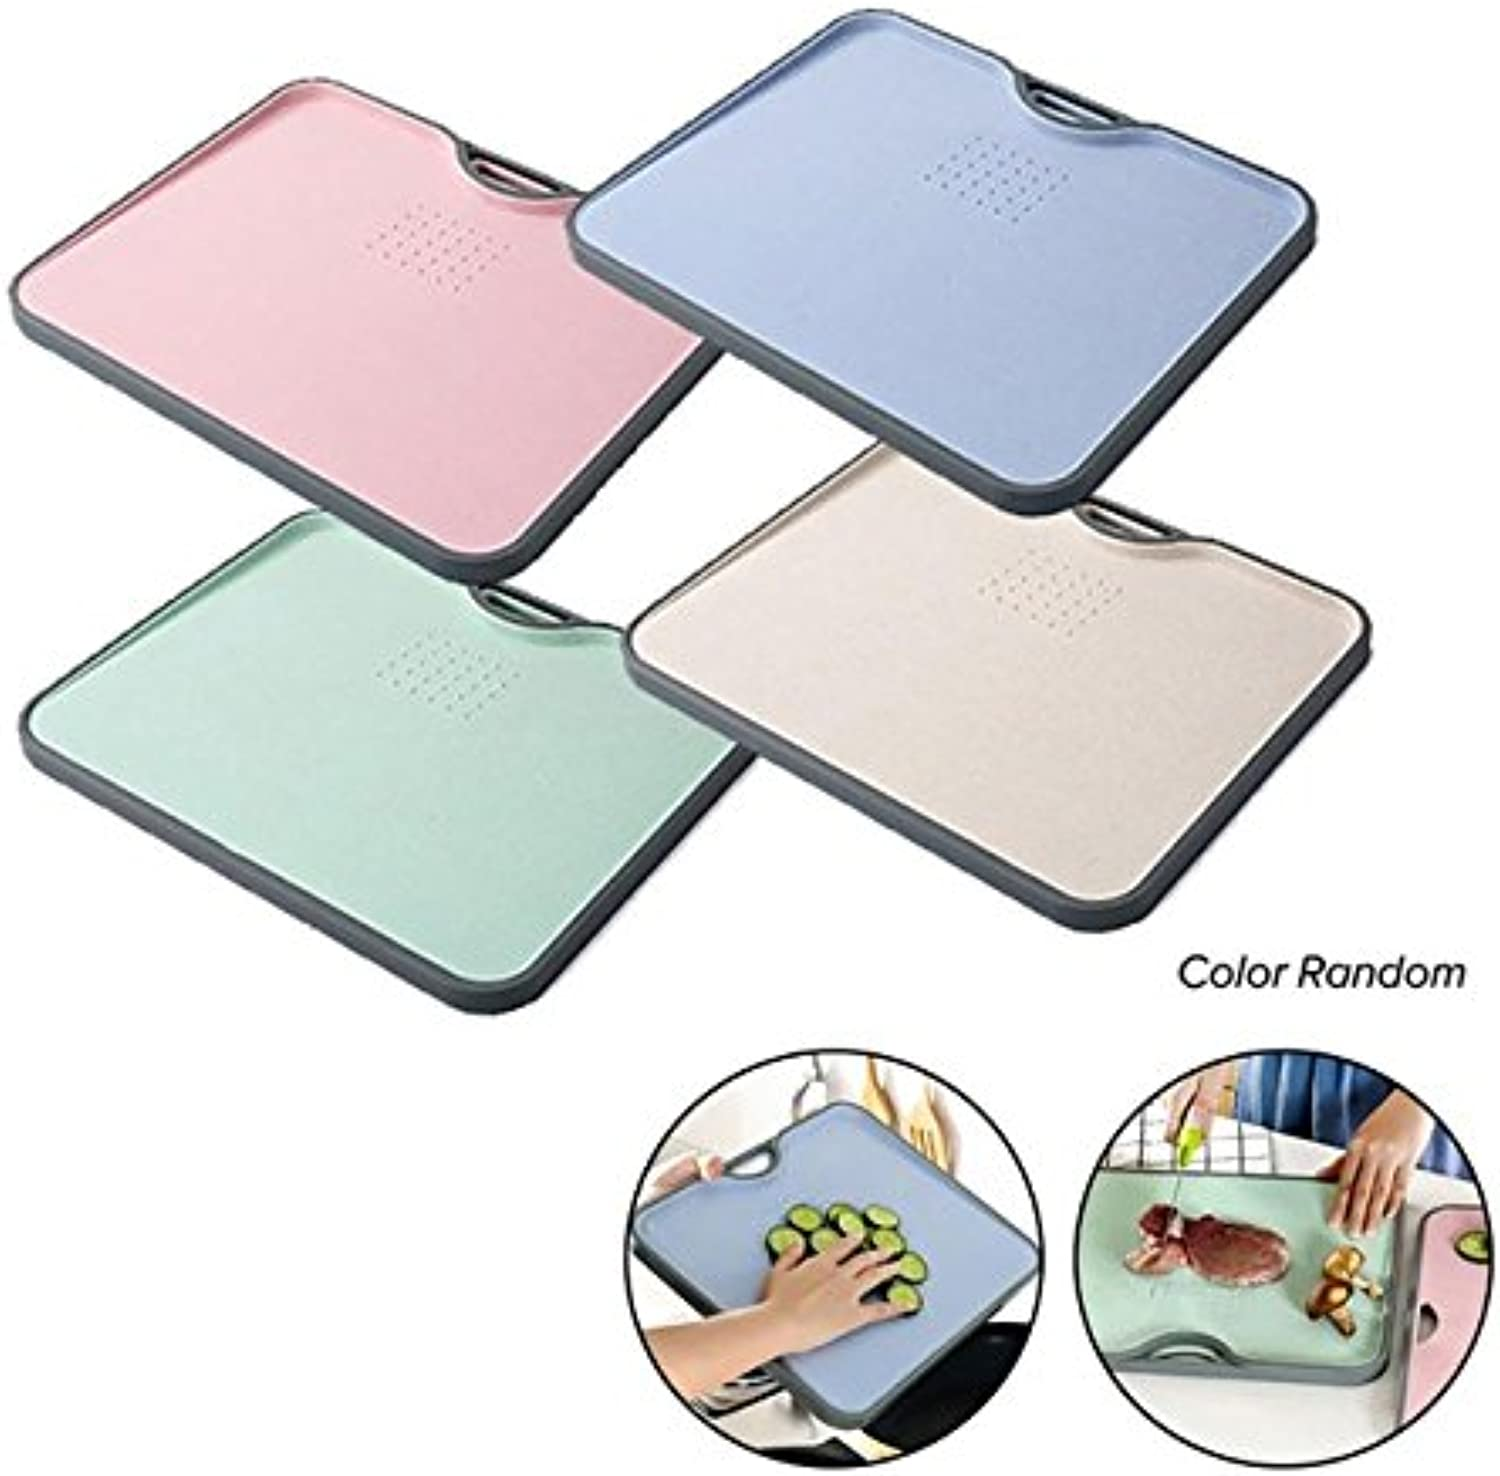 Creative Non-Slip Cutting Block Eco-Friendly Wheat Straw Chopping Block Kitchen Fruits Food Vegetable Board Kitchen Accessories   in Random color